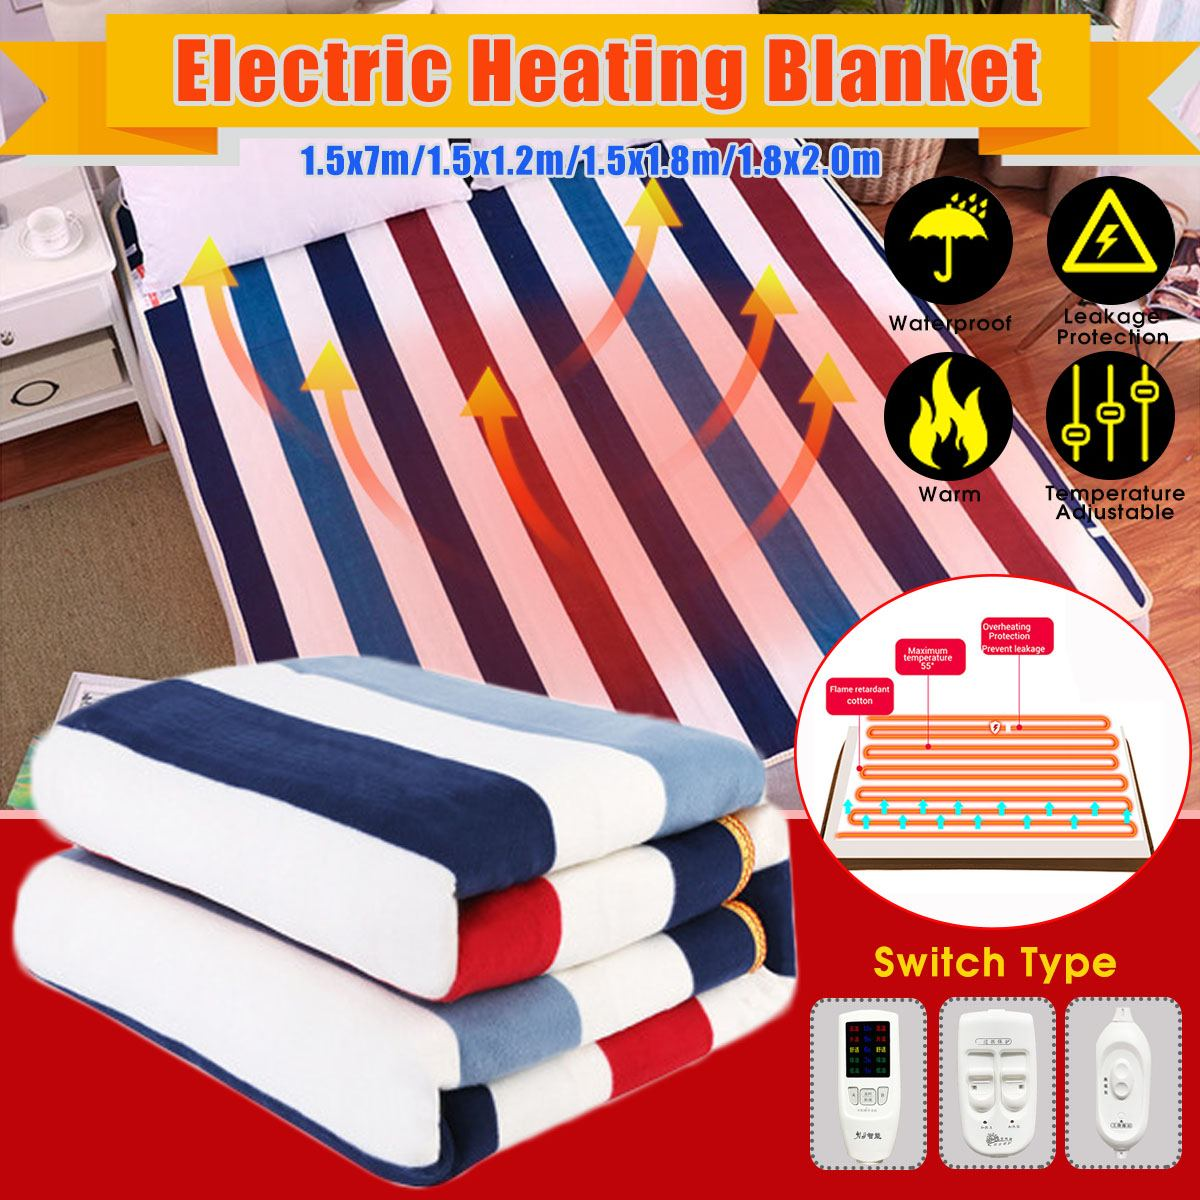 1.5m/1.8m/2m Electric Blanket 220V Waterproof Flannel Heating Blanket Winter Warm Double Bed Striped Style Heated Mattress